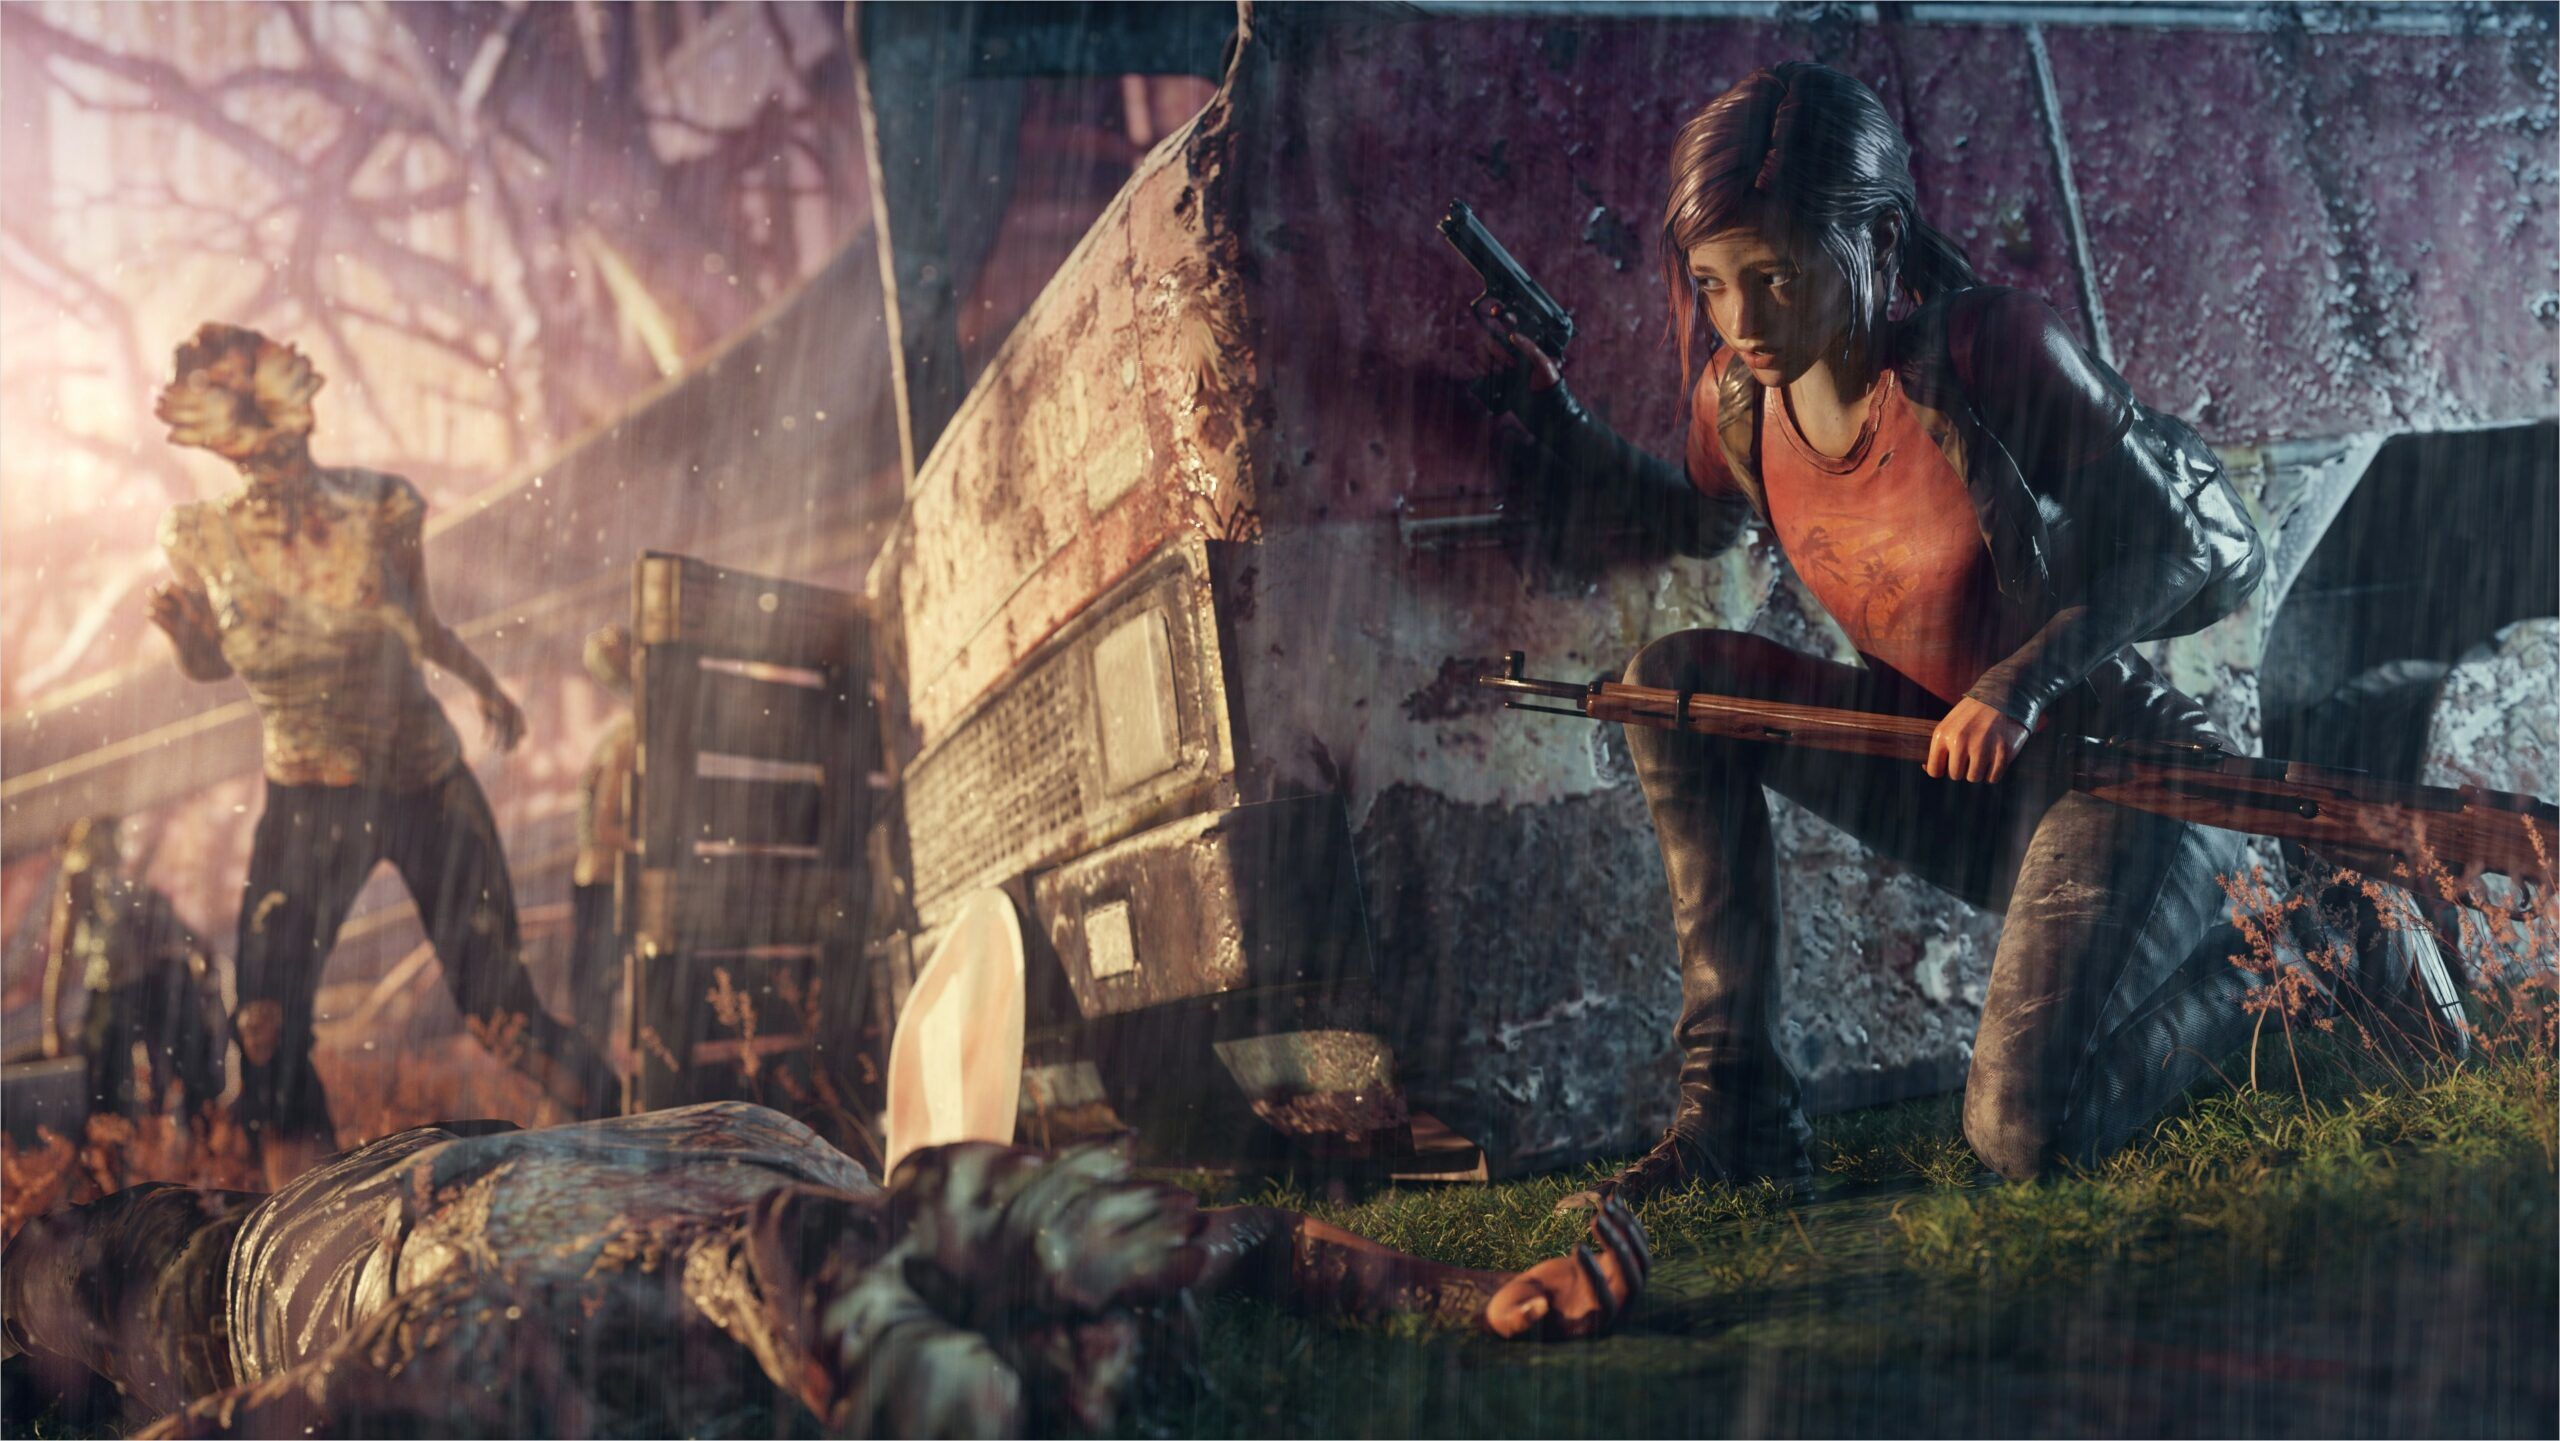 Wallpaper The Last Of Us 4k In 2020 The Last Of Us Background Images Adventure Survival